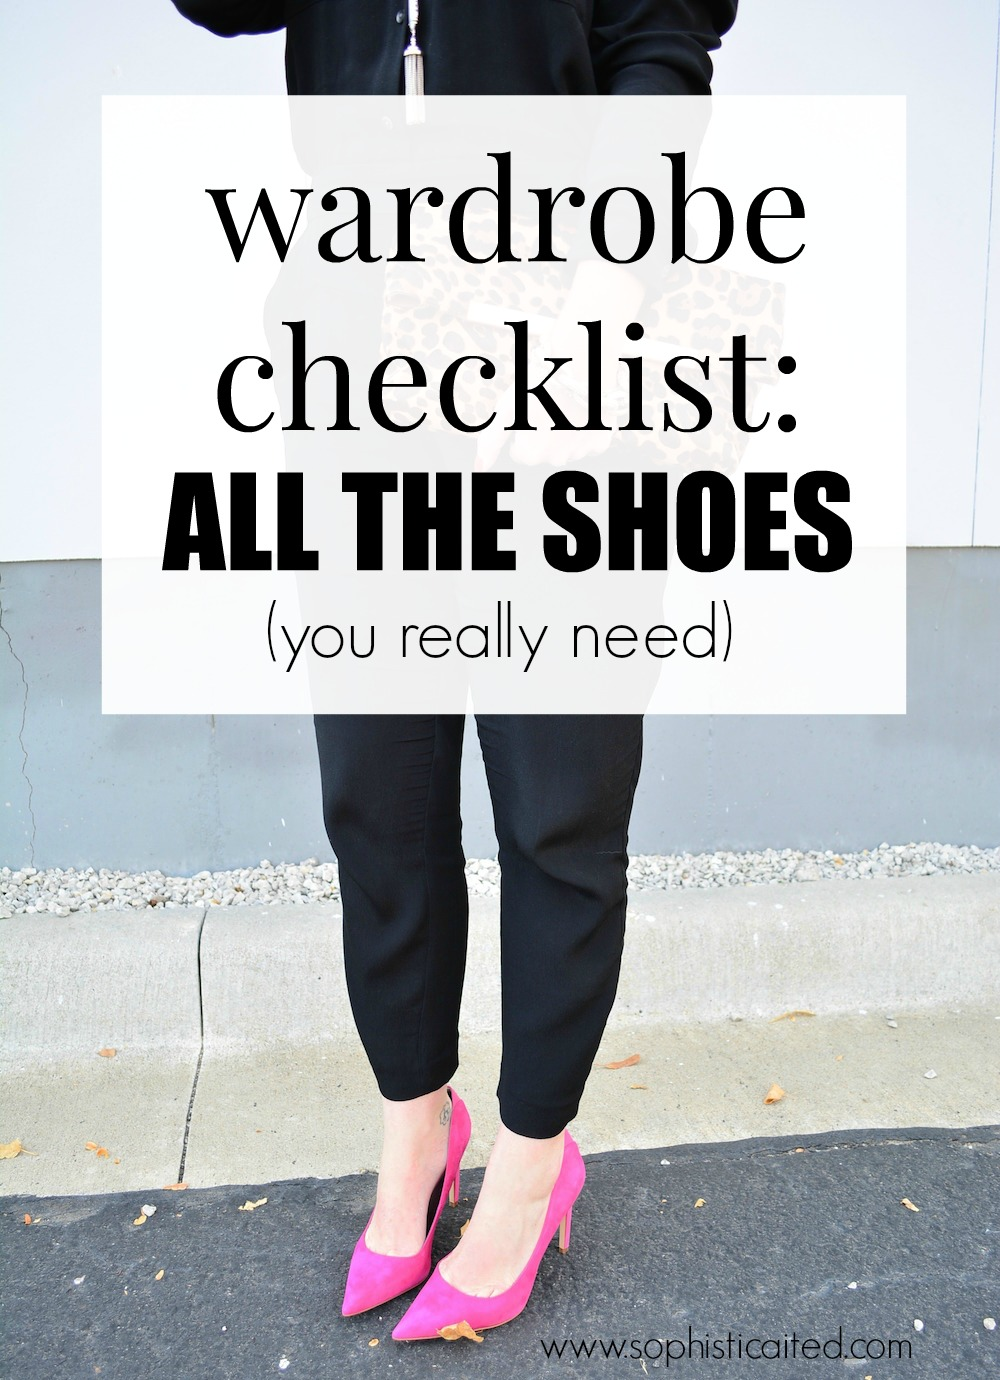 Wardrobe Checklist: SHOES